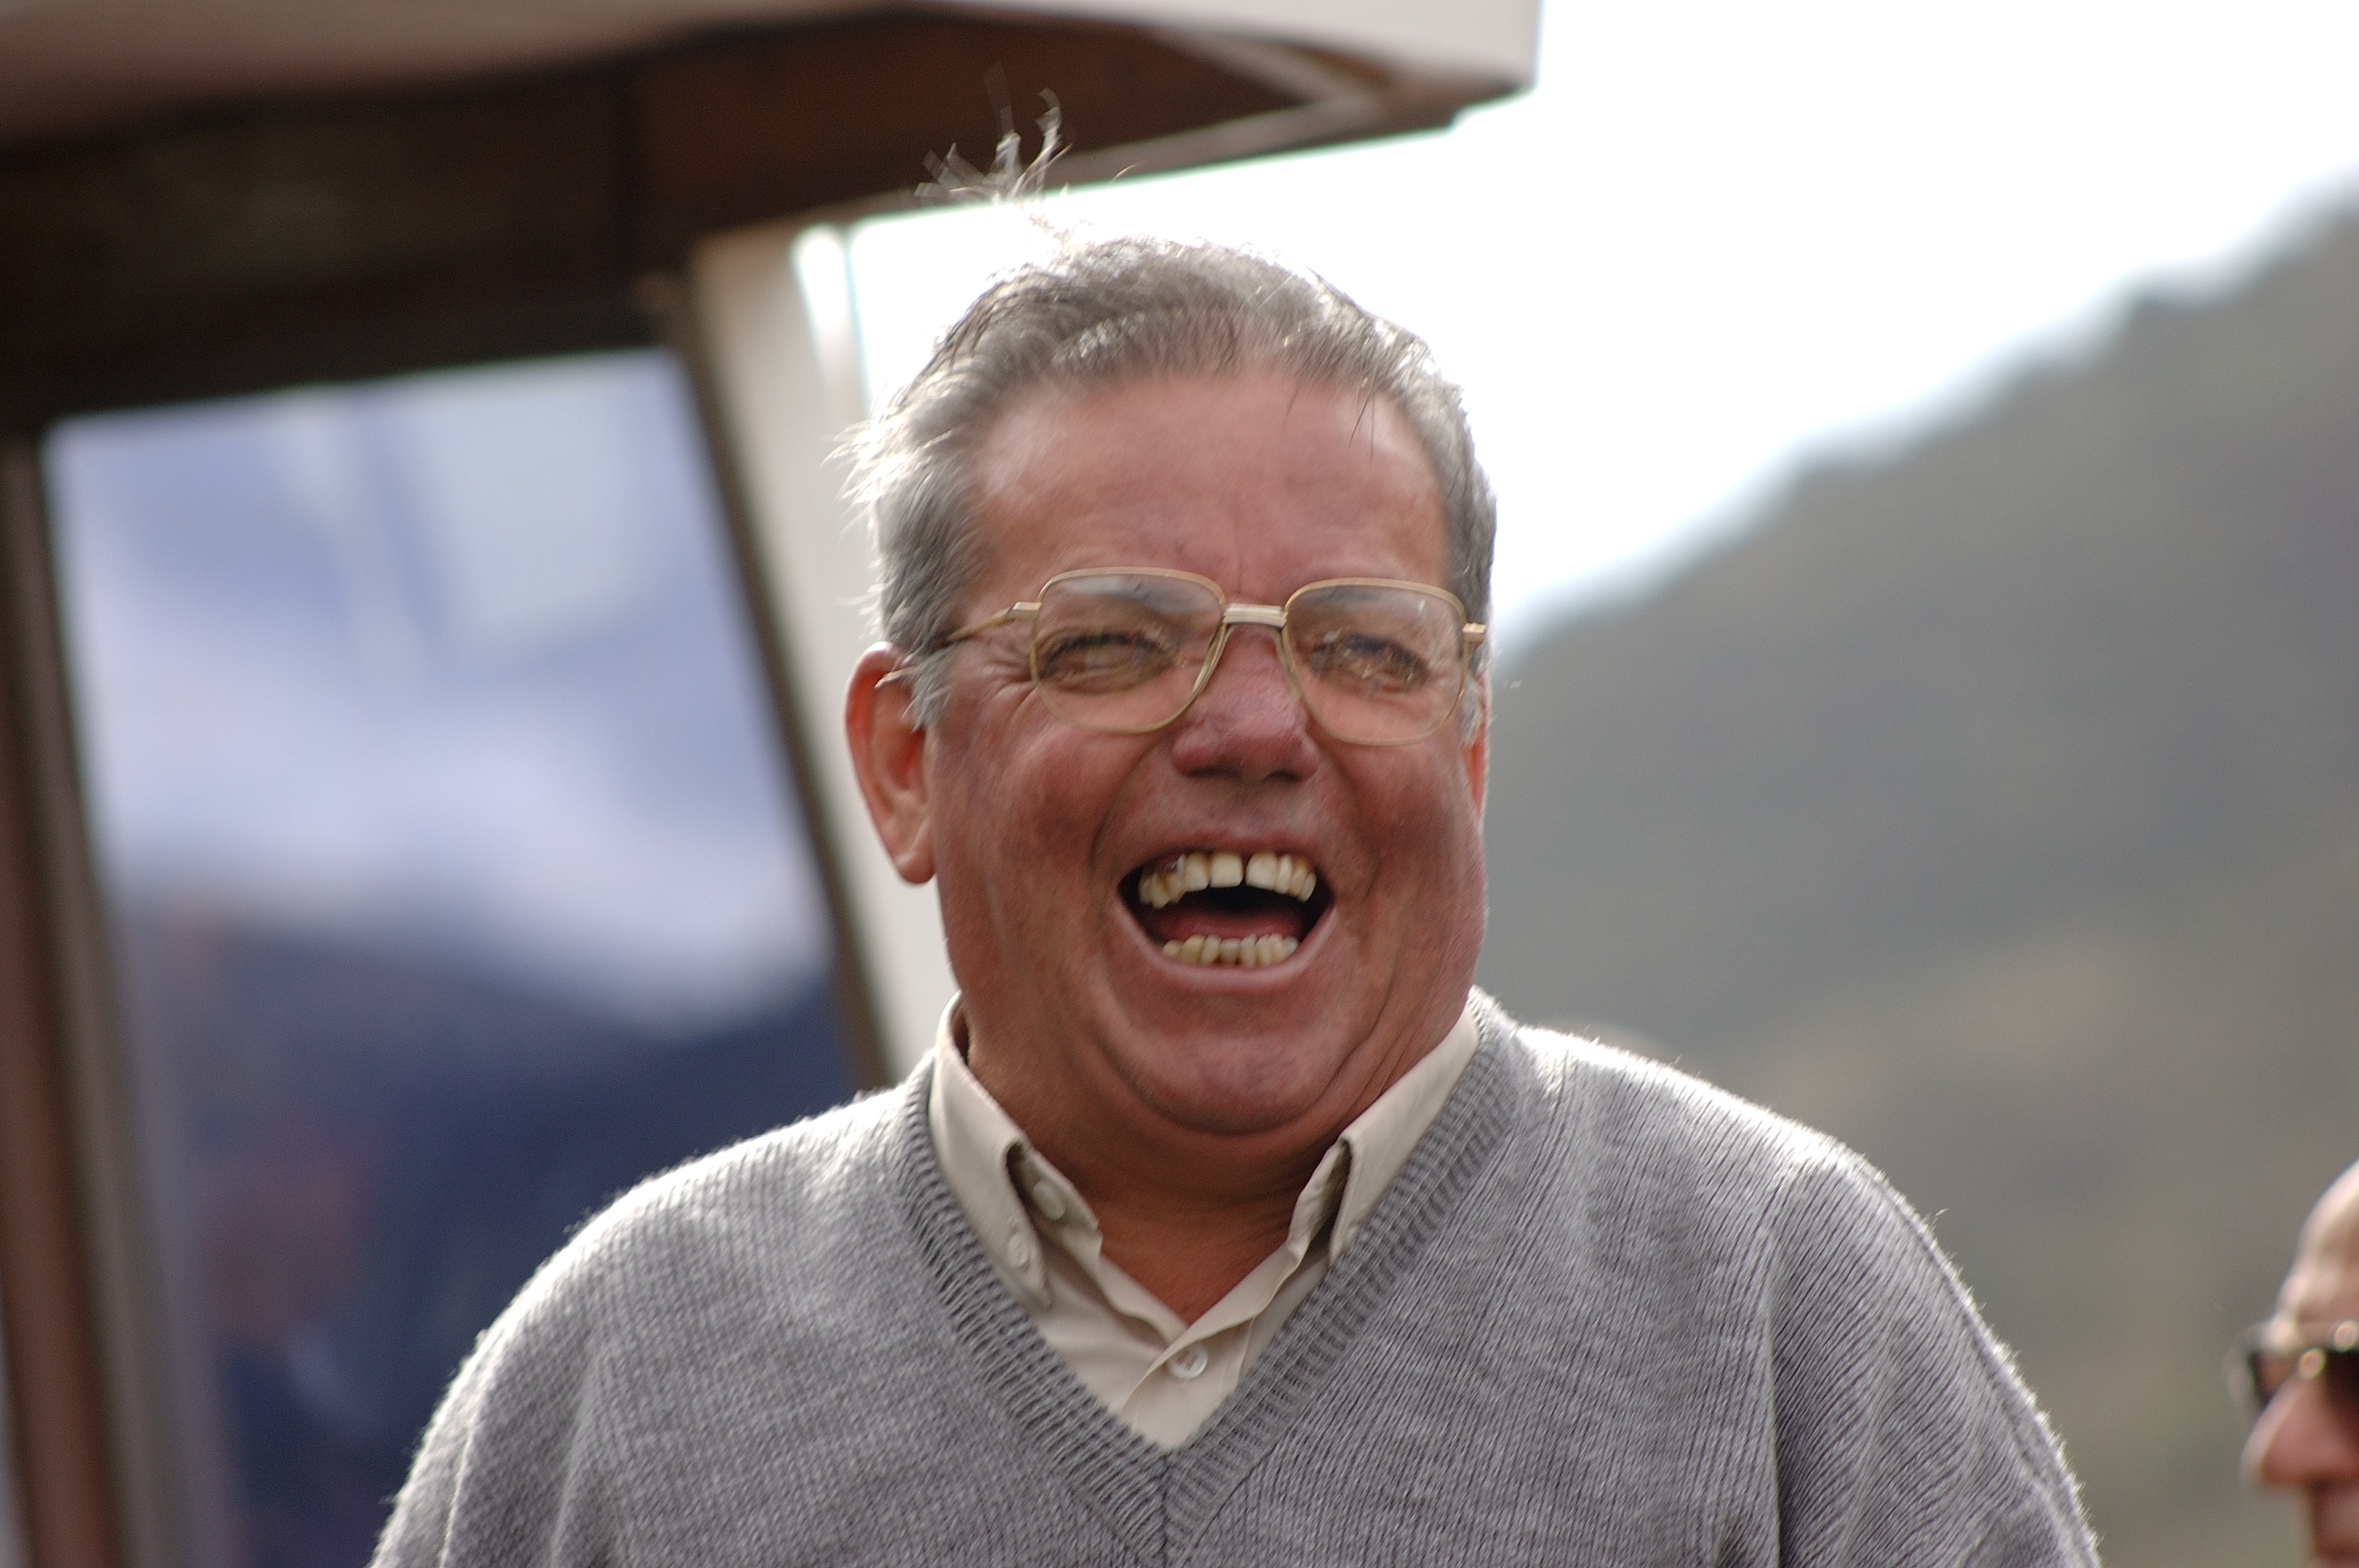 File:Laughing (59303979).jpg - Wikimedia Commons